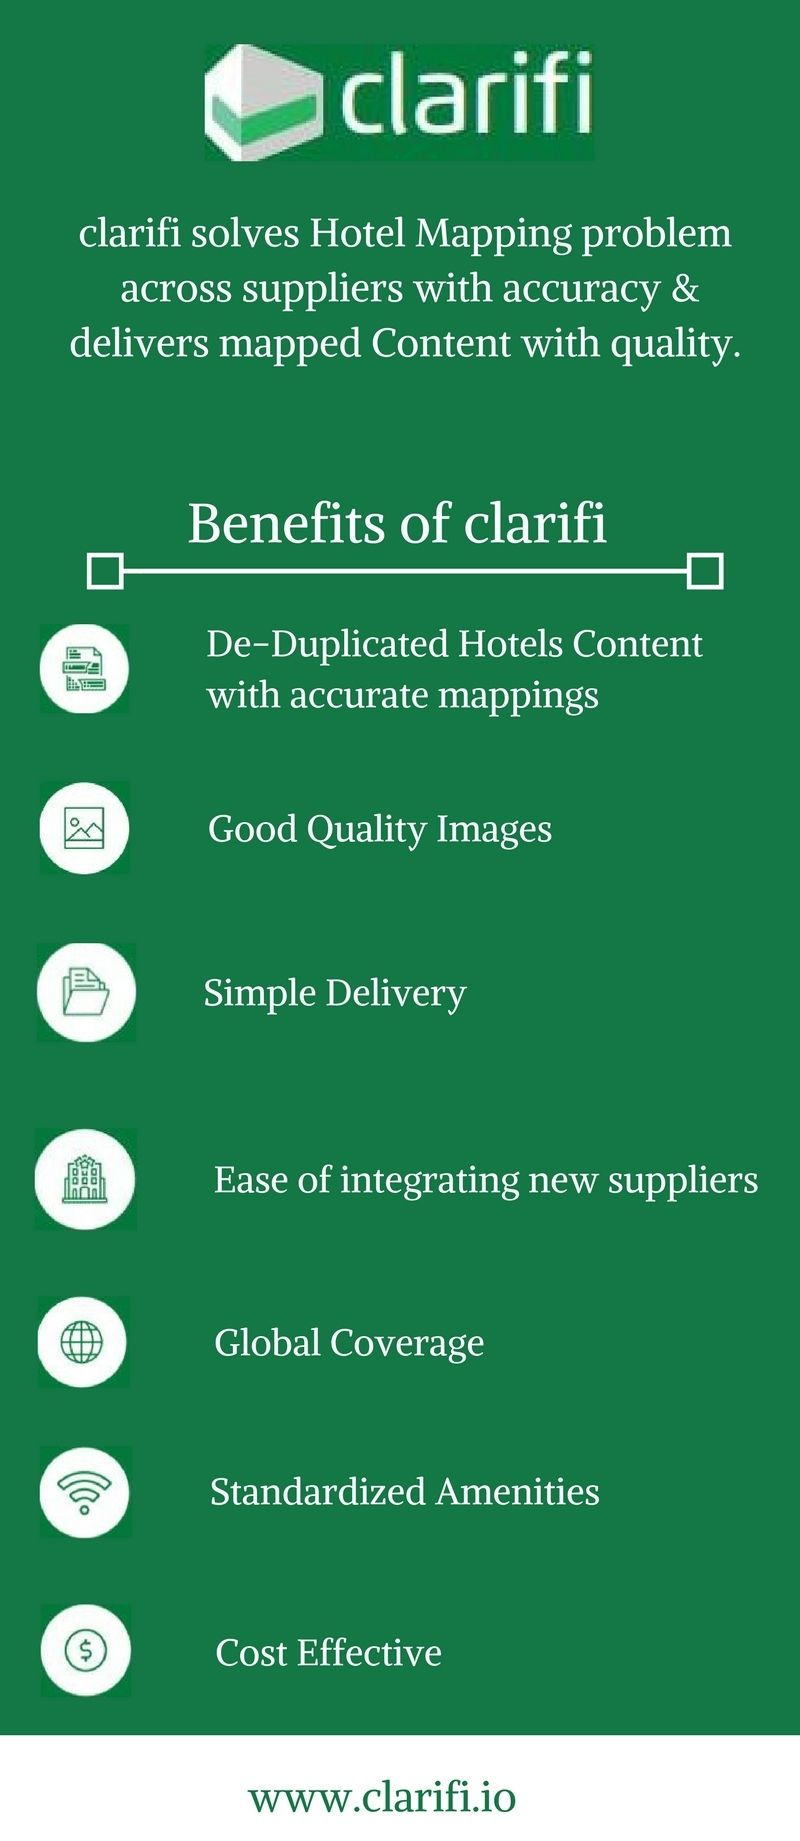 clarifi solves hotel mapping problem across suppliers with